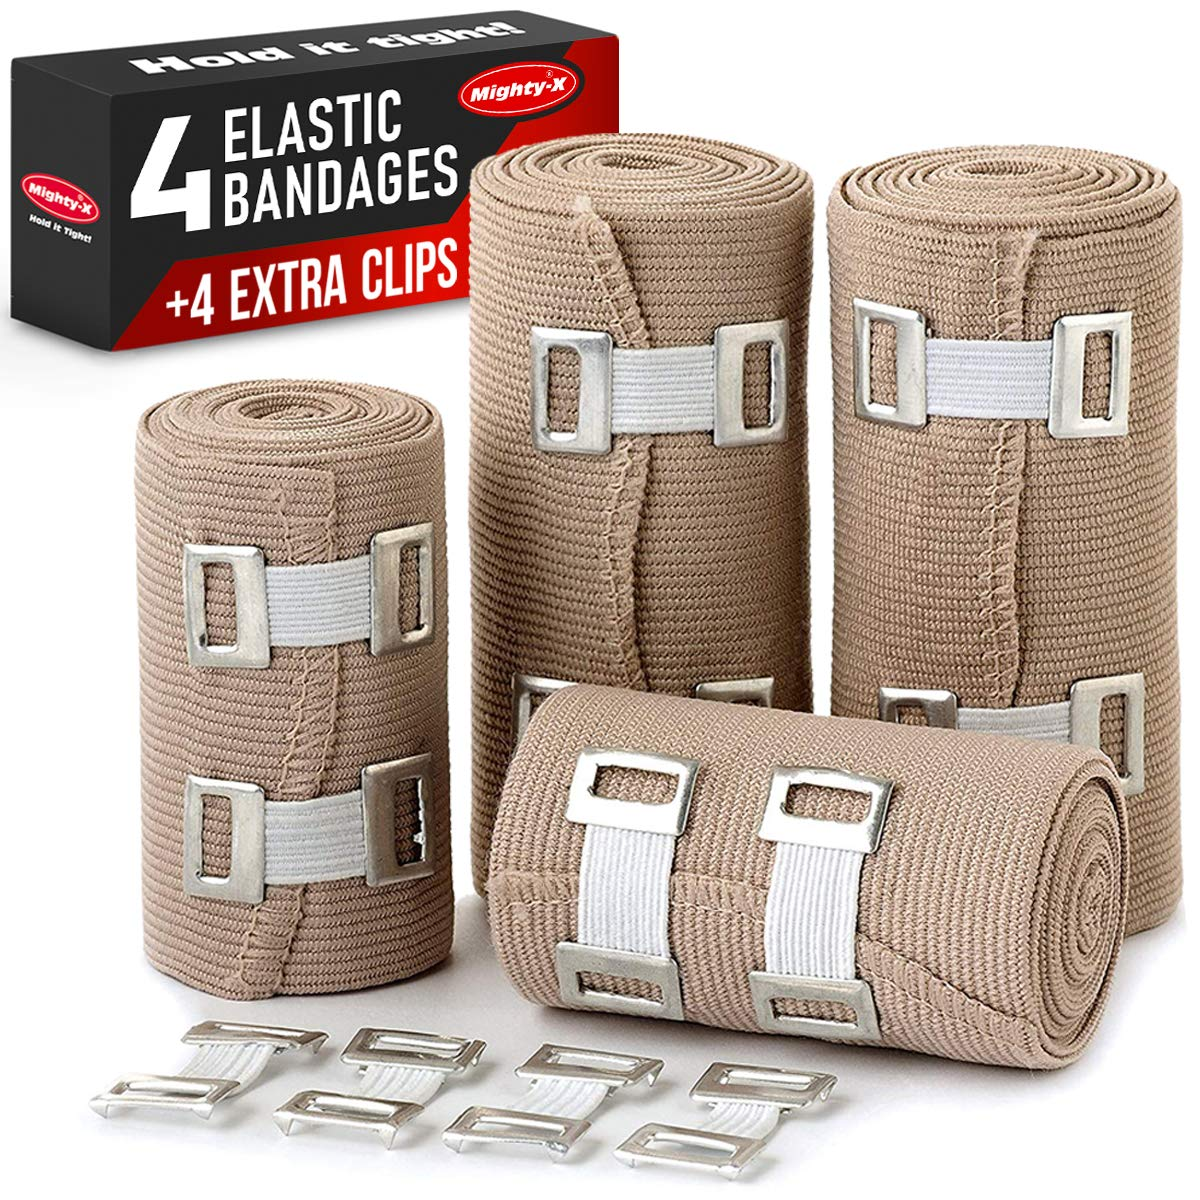 Premium Elastic Bandage Wrap - 4 Pack + 4 Extra Clips - Durable Compression Bandage (2X - 3 inch, 4X - 4 inch Rolls) Stretches up to 15ft in Length by Mighty-X